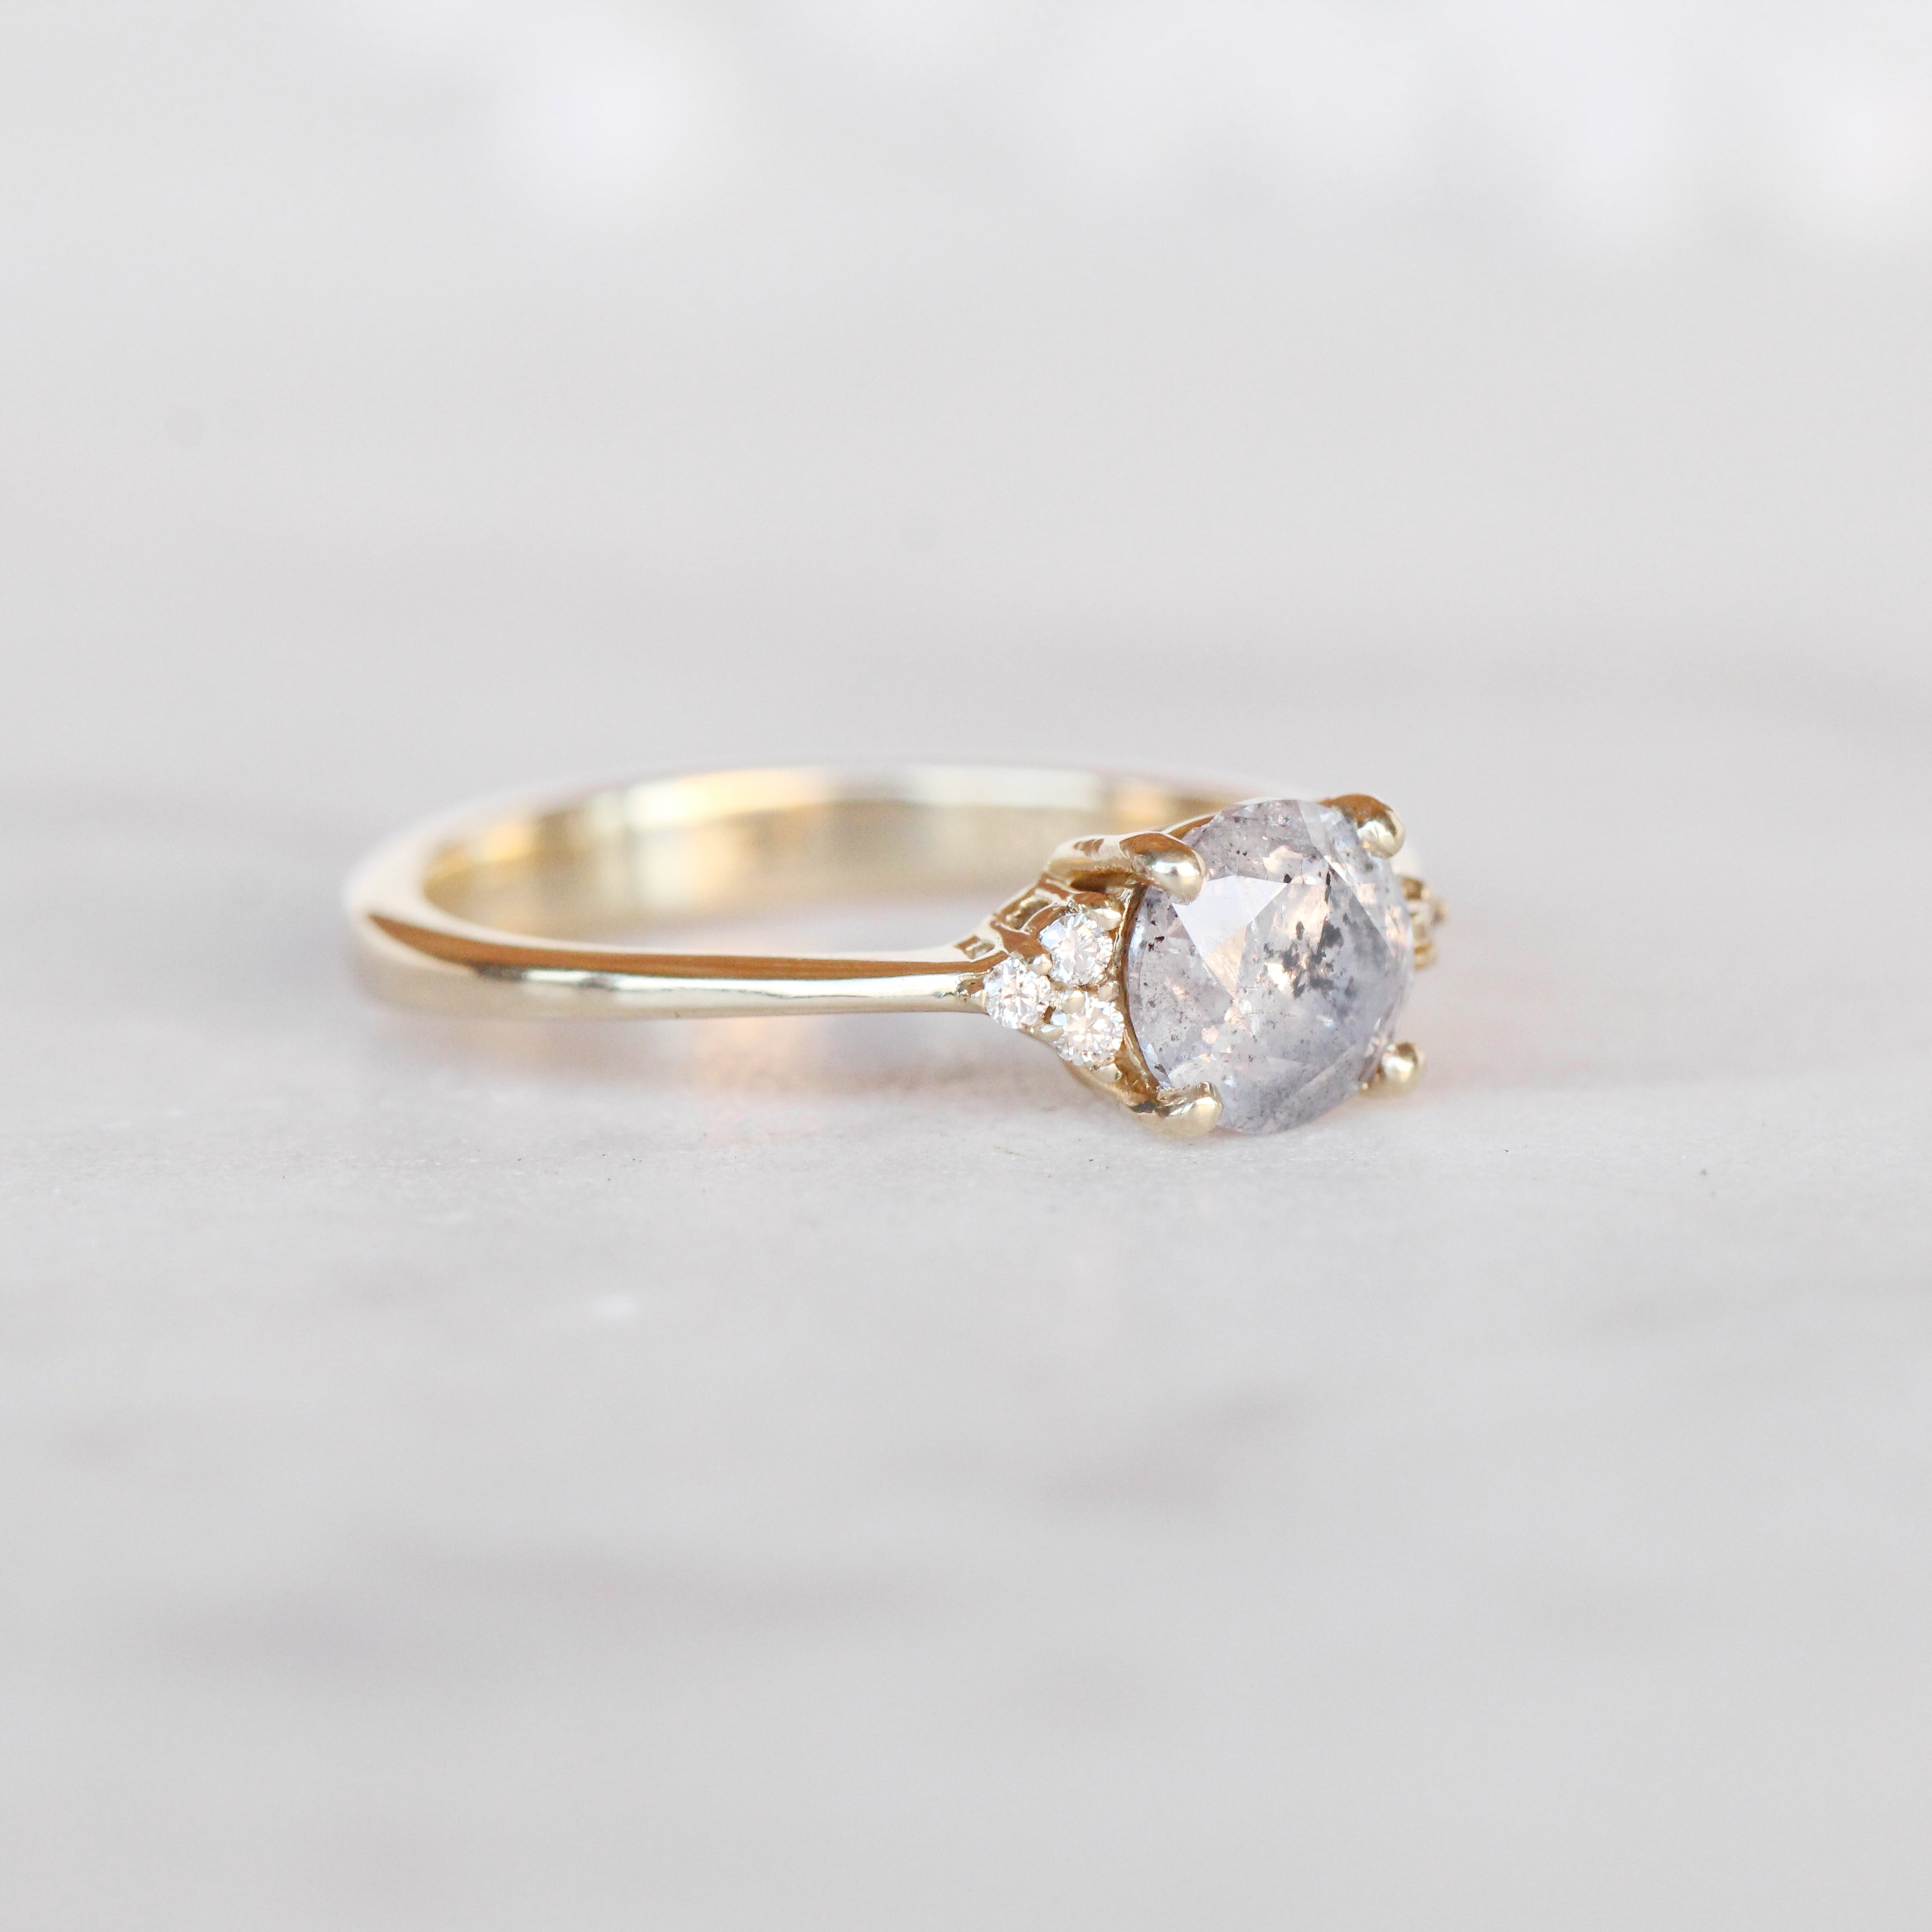 Imogene Ring with a 1.12 Carat Celestial Diamond and Six 1.3mm Cear Accents in 14k Yellow - Ready to Size and Ship - Salt & Pepper Celestial Diamond Engagement Rings and Wedding Bands  by Midwinter Co.